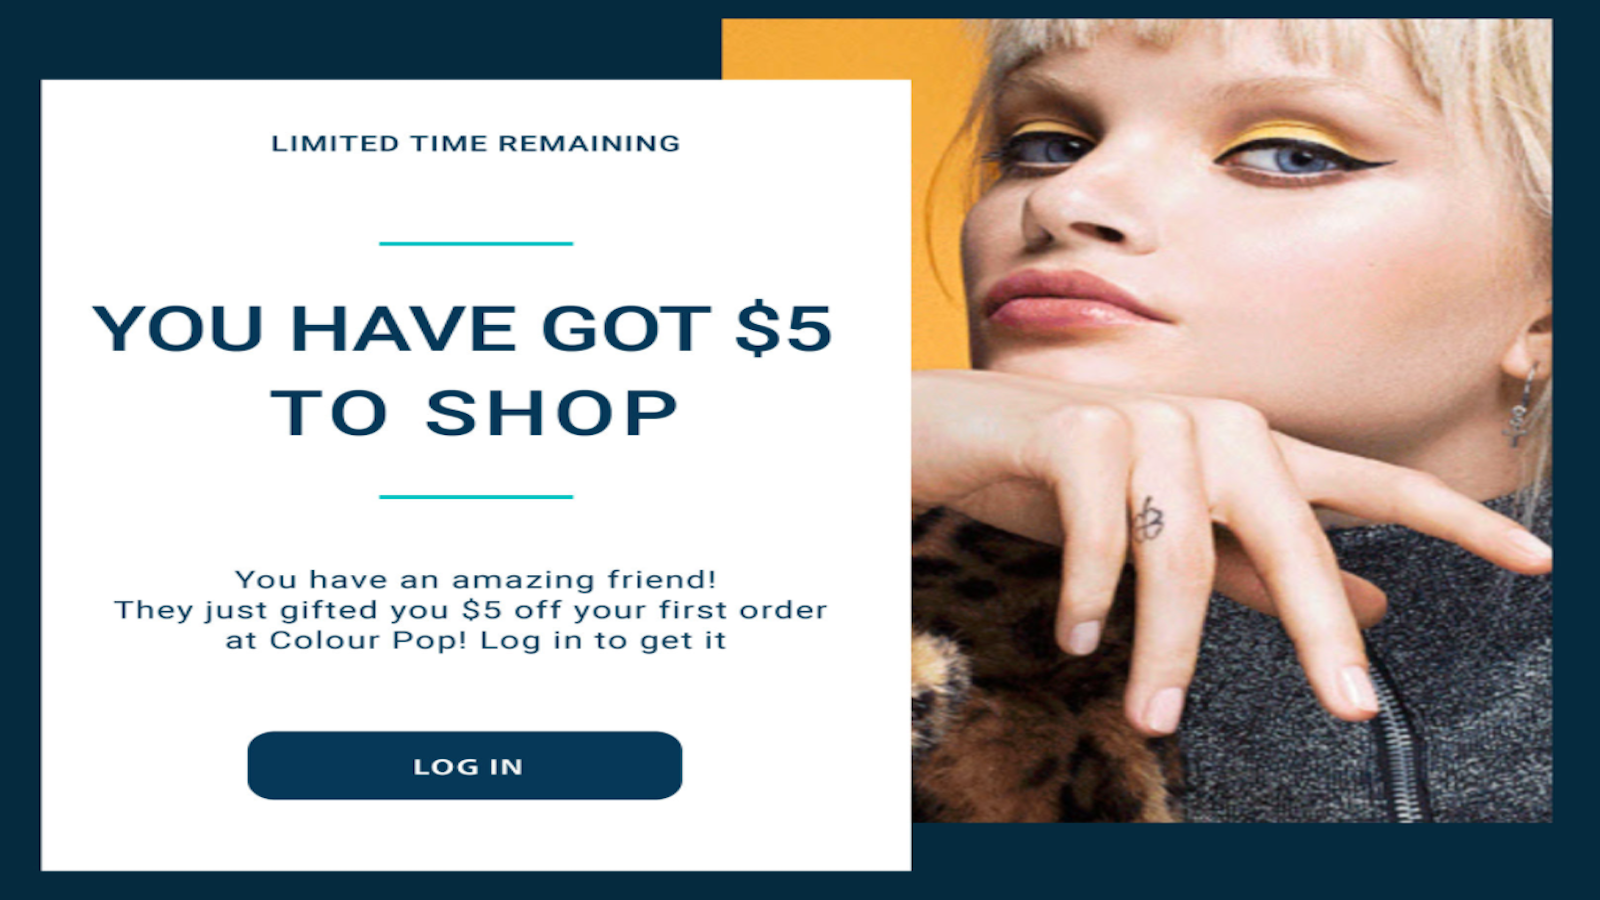 Attract Better Customers with a Referral Program